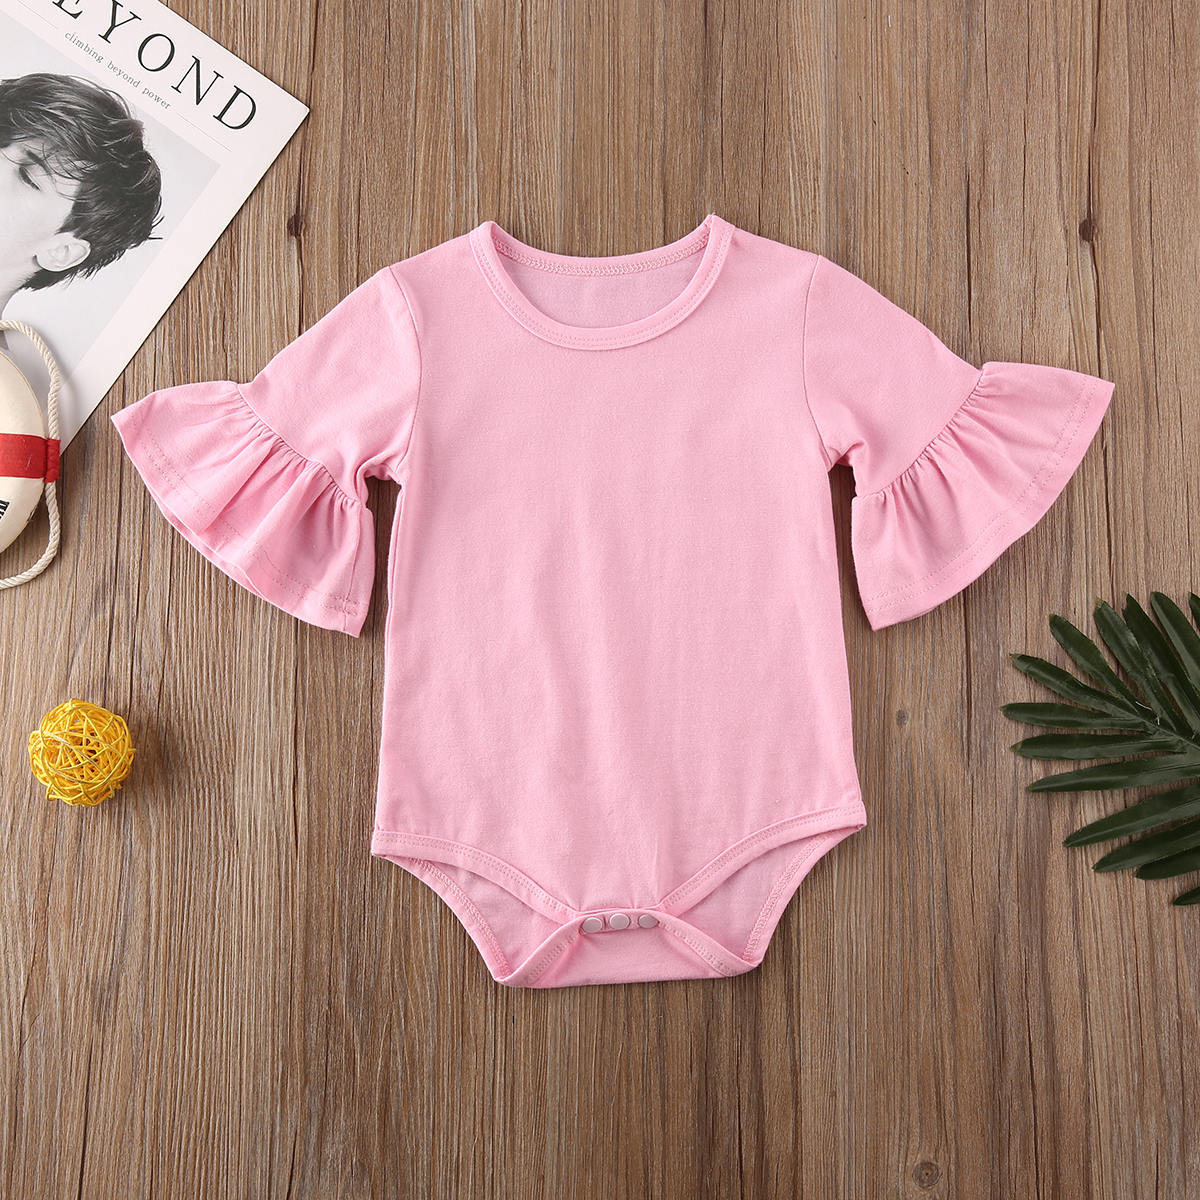 Toddler Baby Girls Off Shoulder Bodysuit Ruffle Bowknot Belt Romper Flare Bell Sleeve Jumpsuit Wide Leg Pants Shorts Outfits